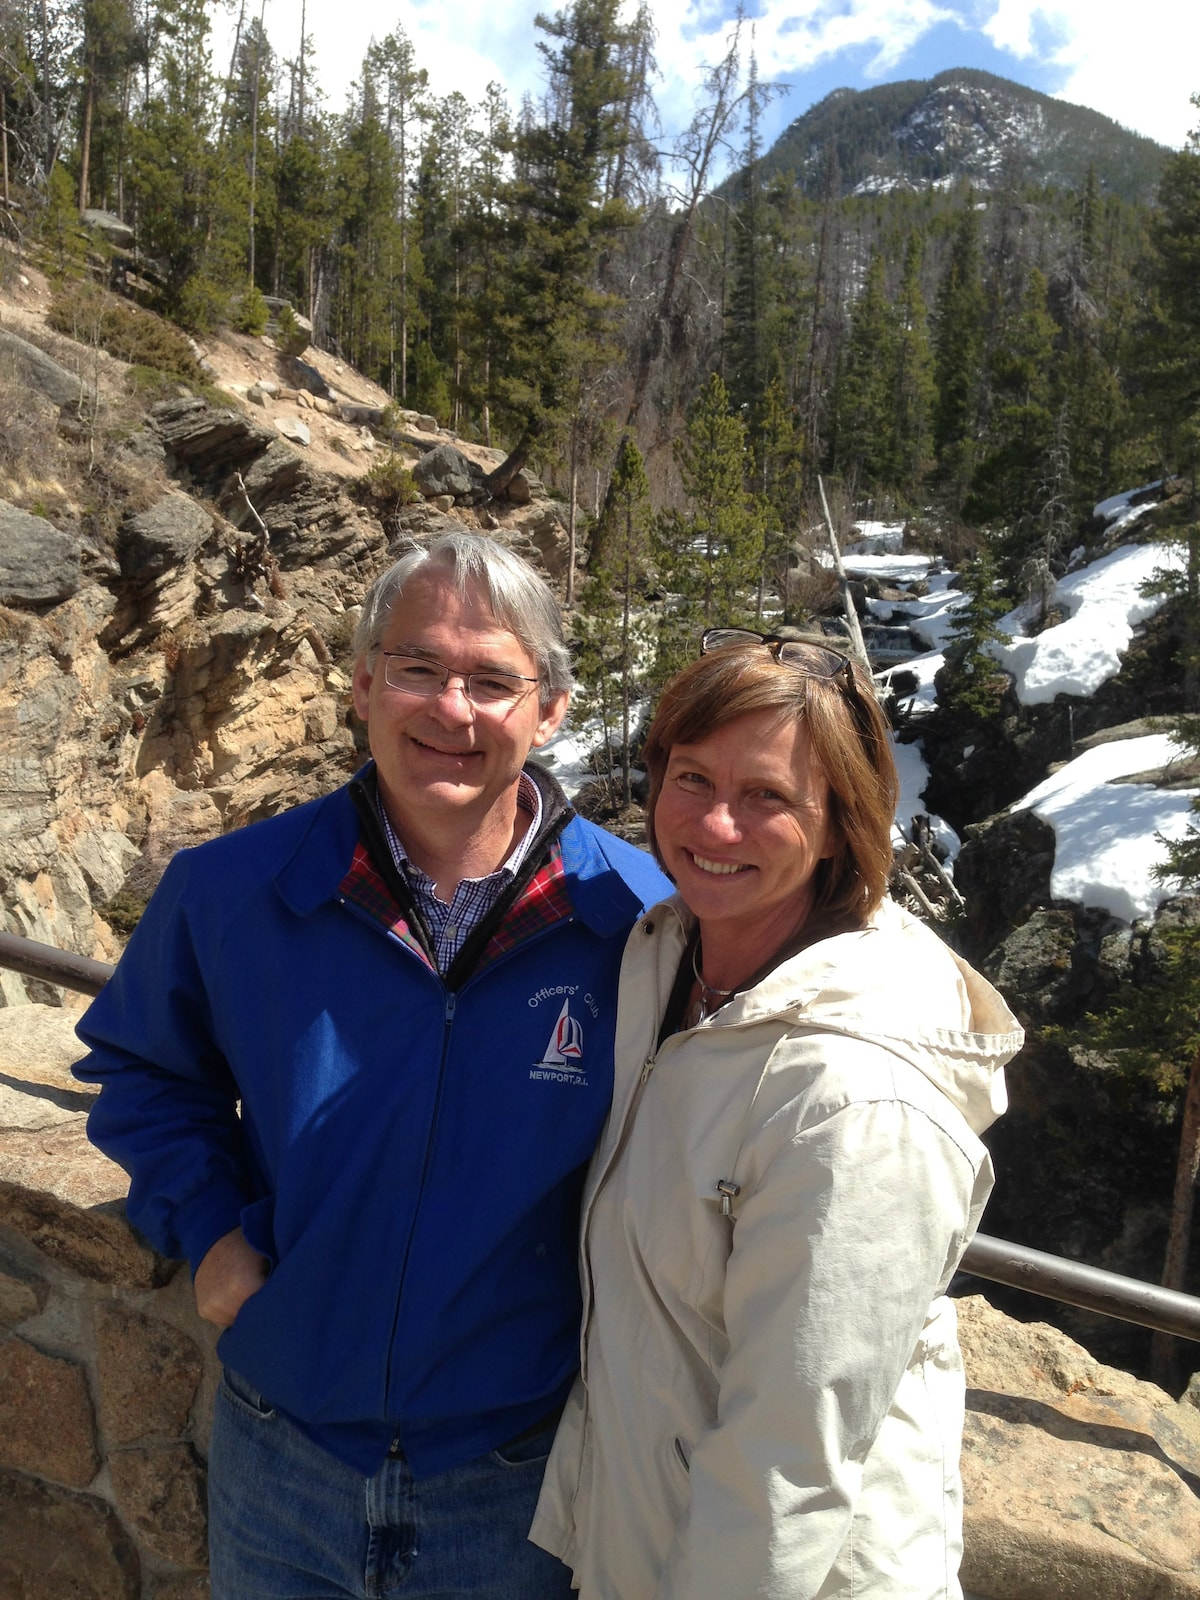 Chris And Melanie from Silverthorne